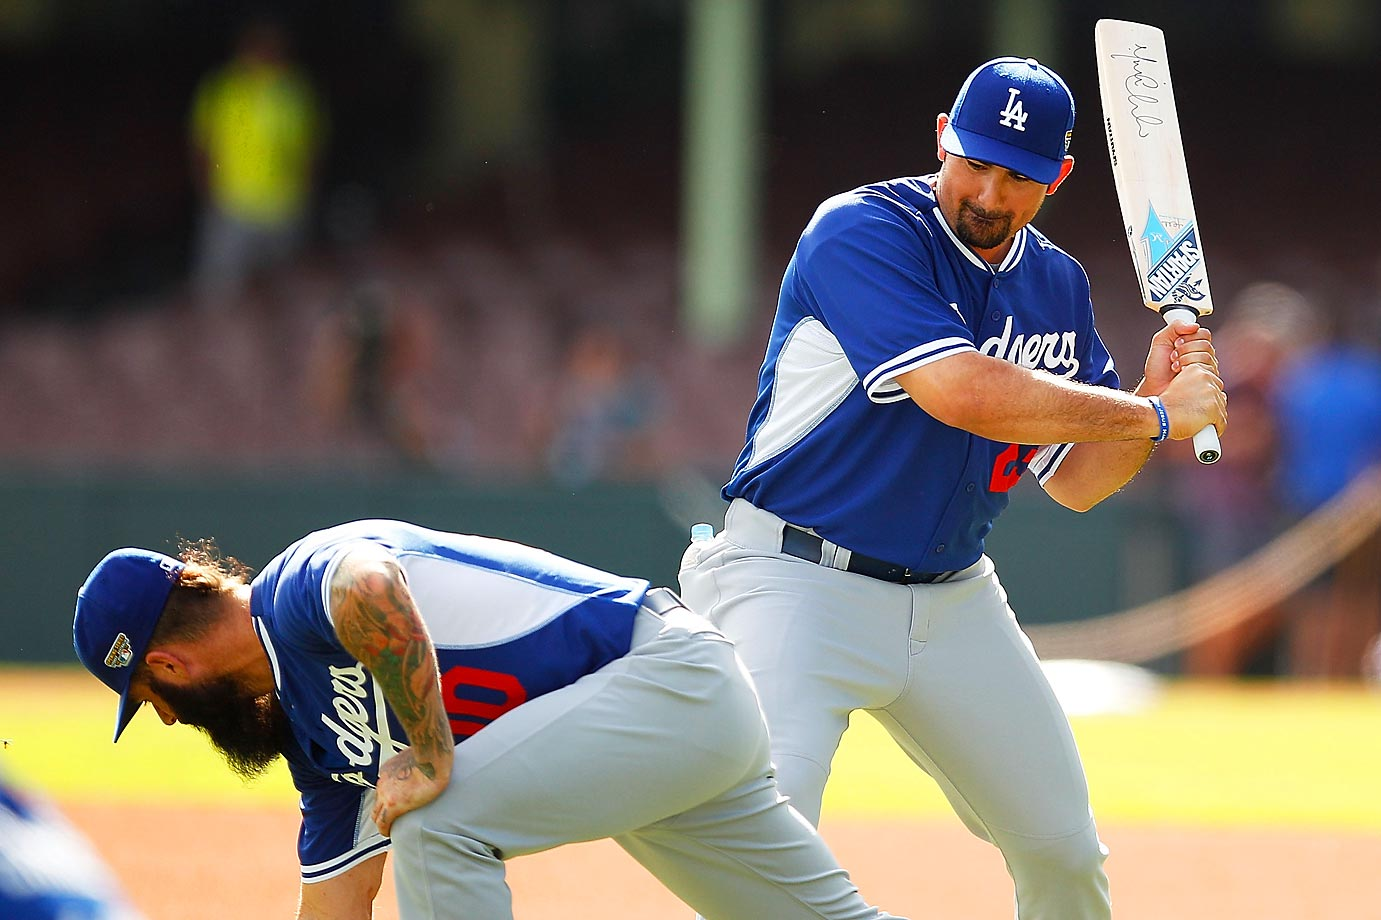 Adrian Gonzalez of the Dodgers gestures towards teammate Brian Wilson with a cricket bat during a training session in Australia.